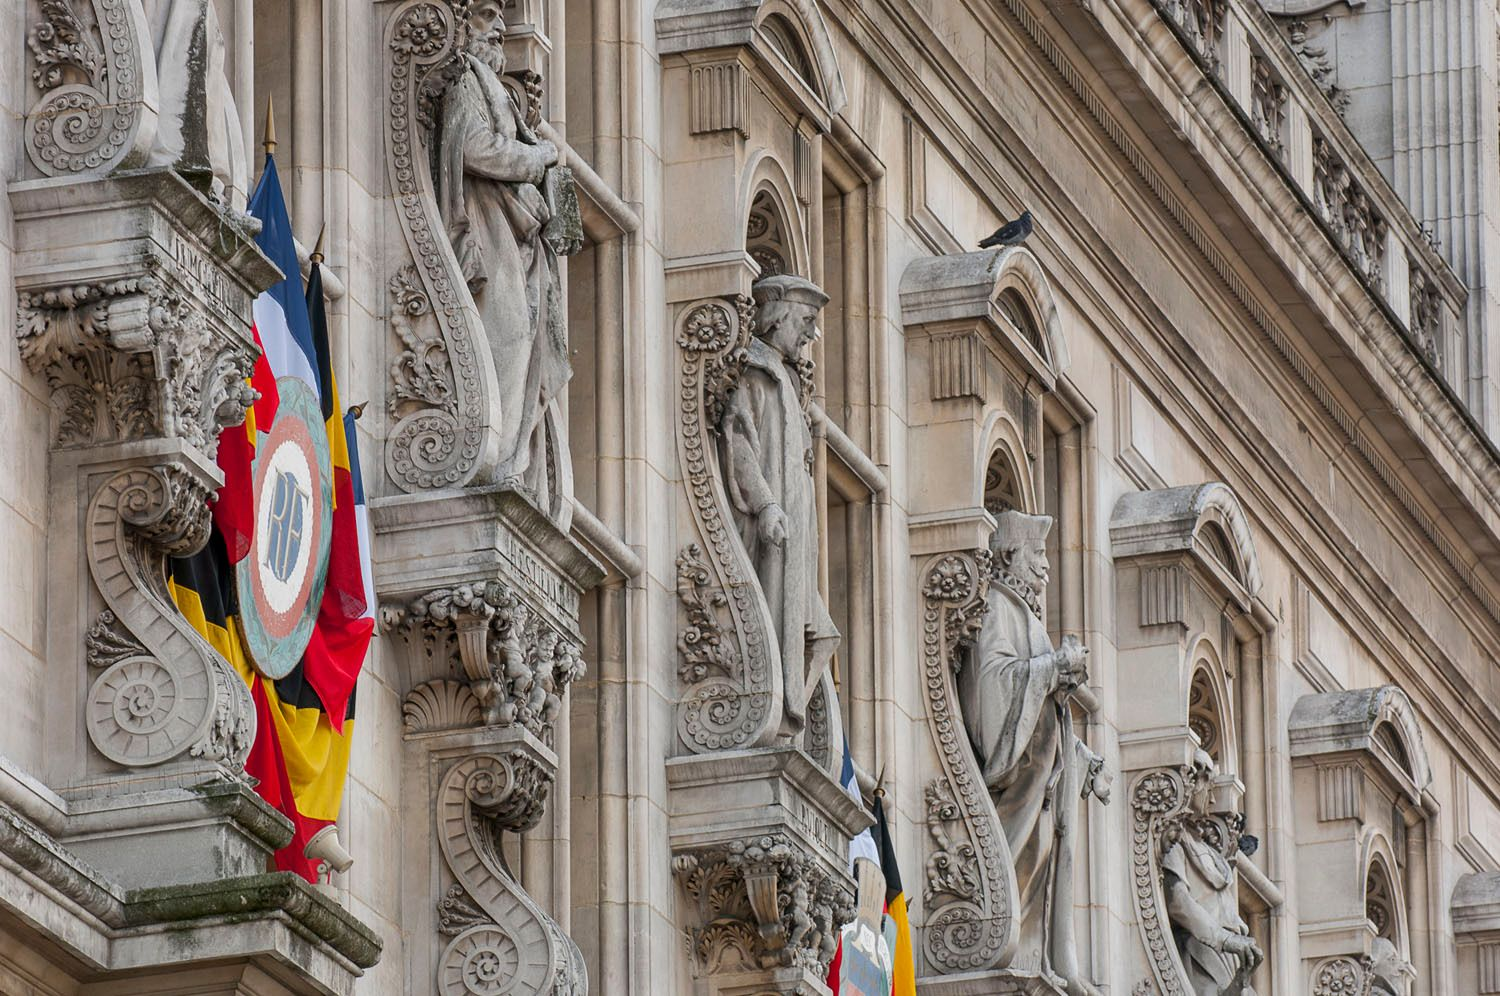 Statues on exterior of Paris City Hall, France